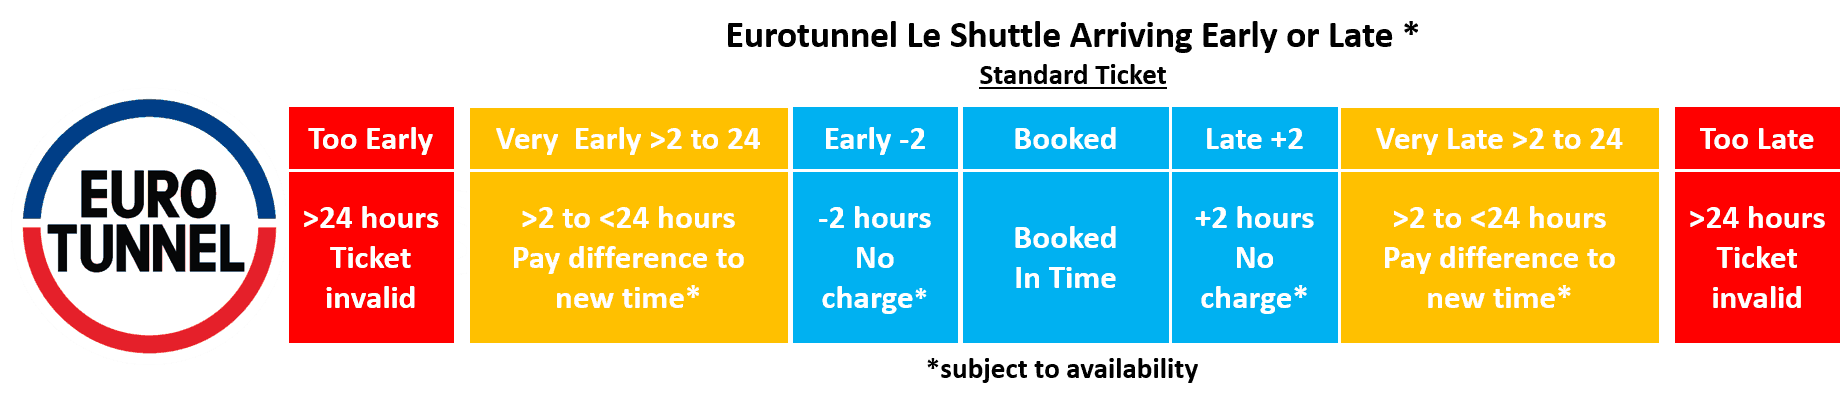 eurotunnel arriving early or late standard ticket policy